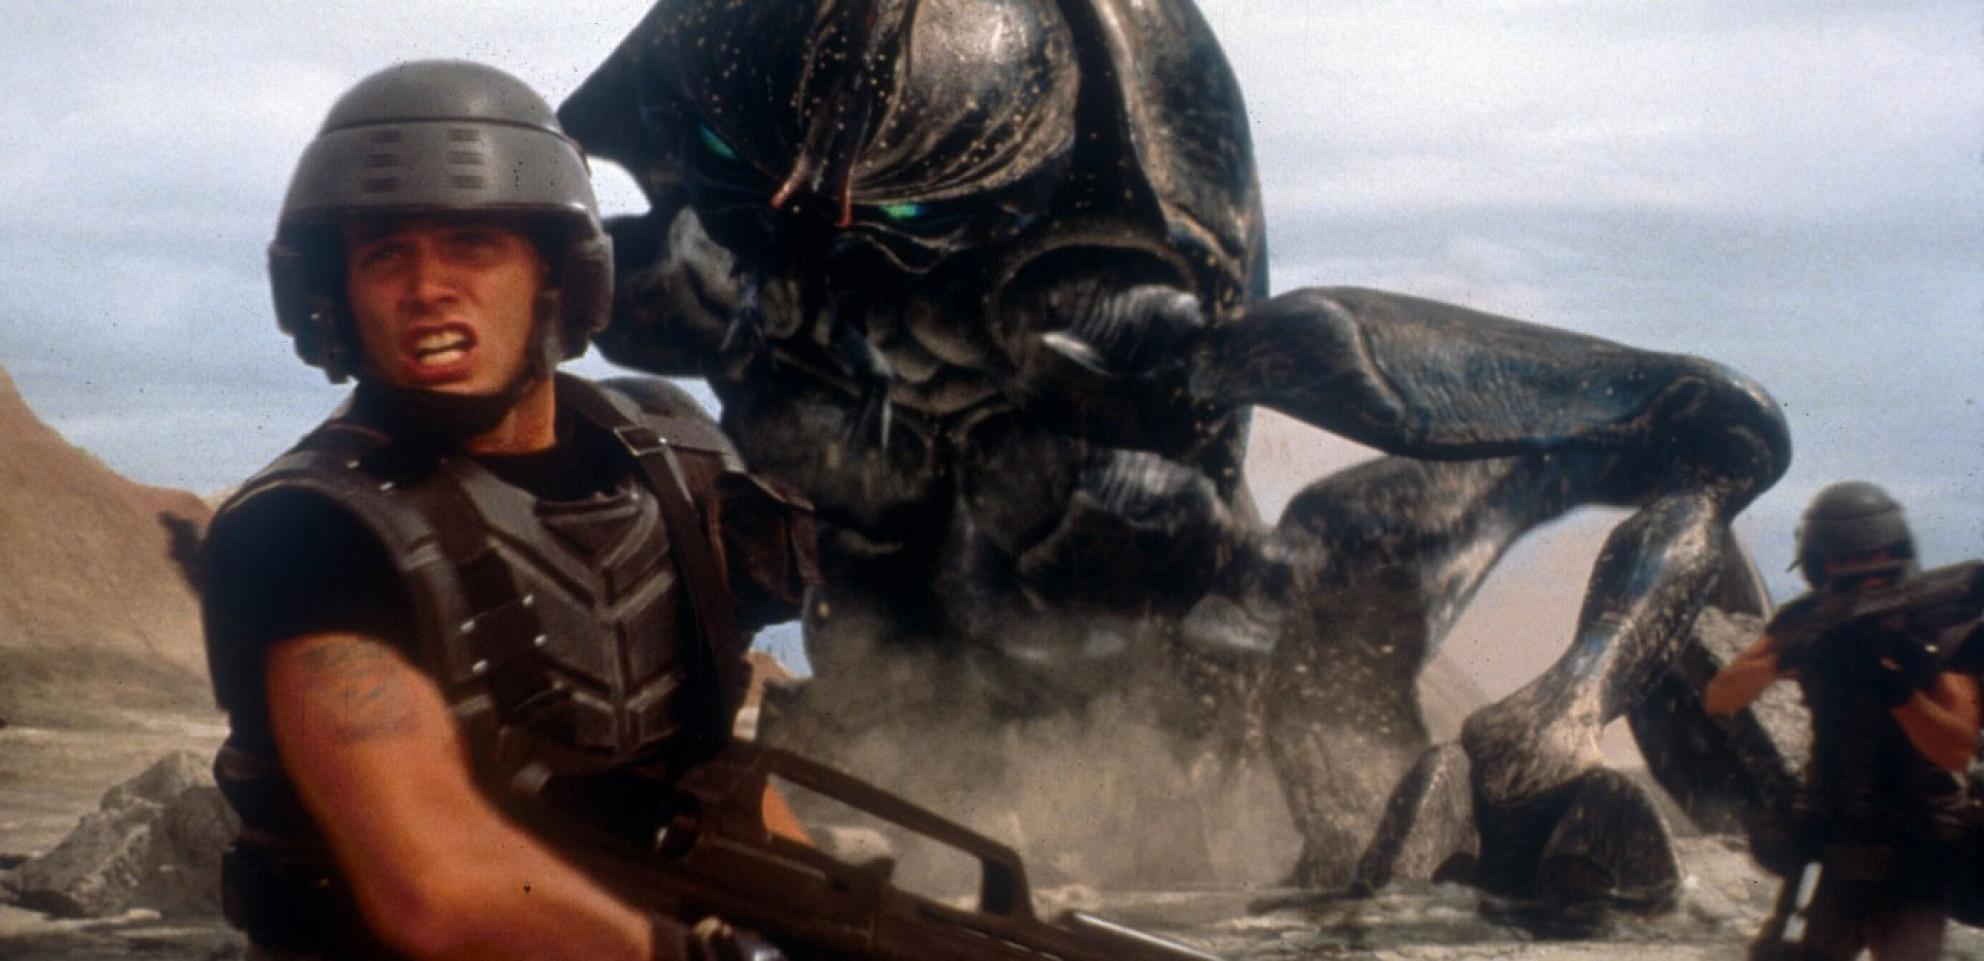 A soldier turns to run away from a giant attacking insect